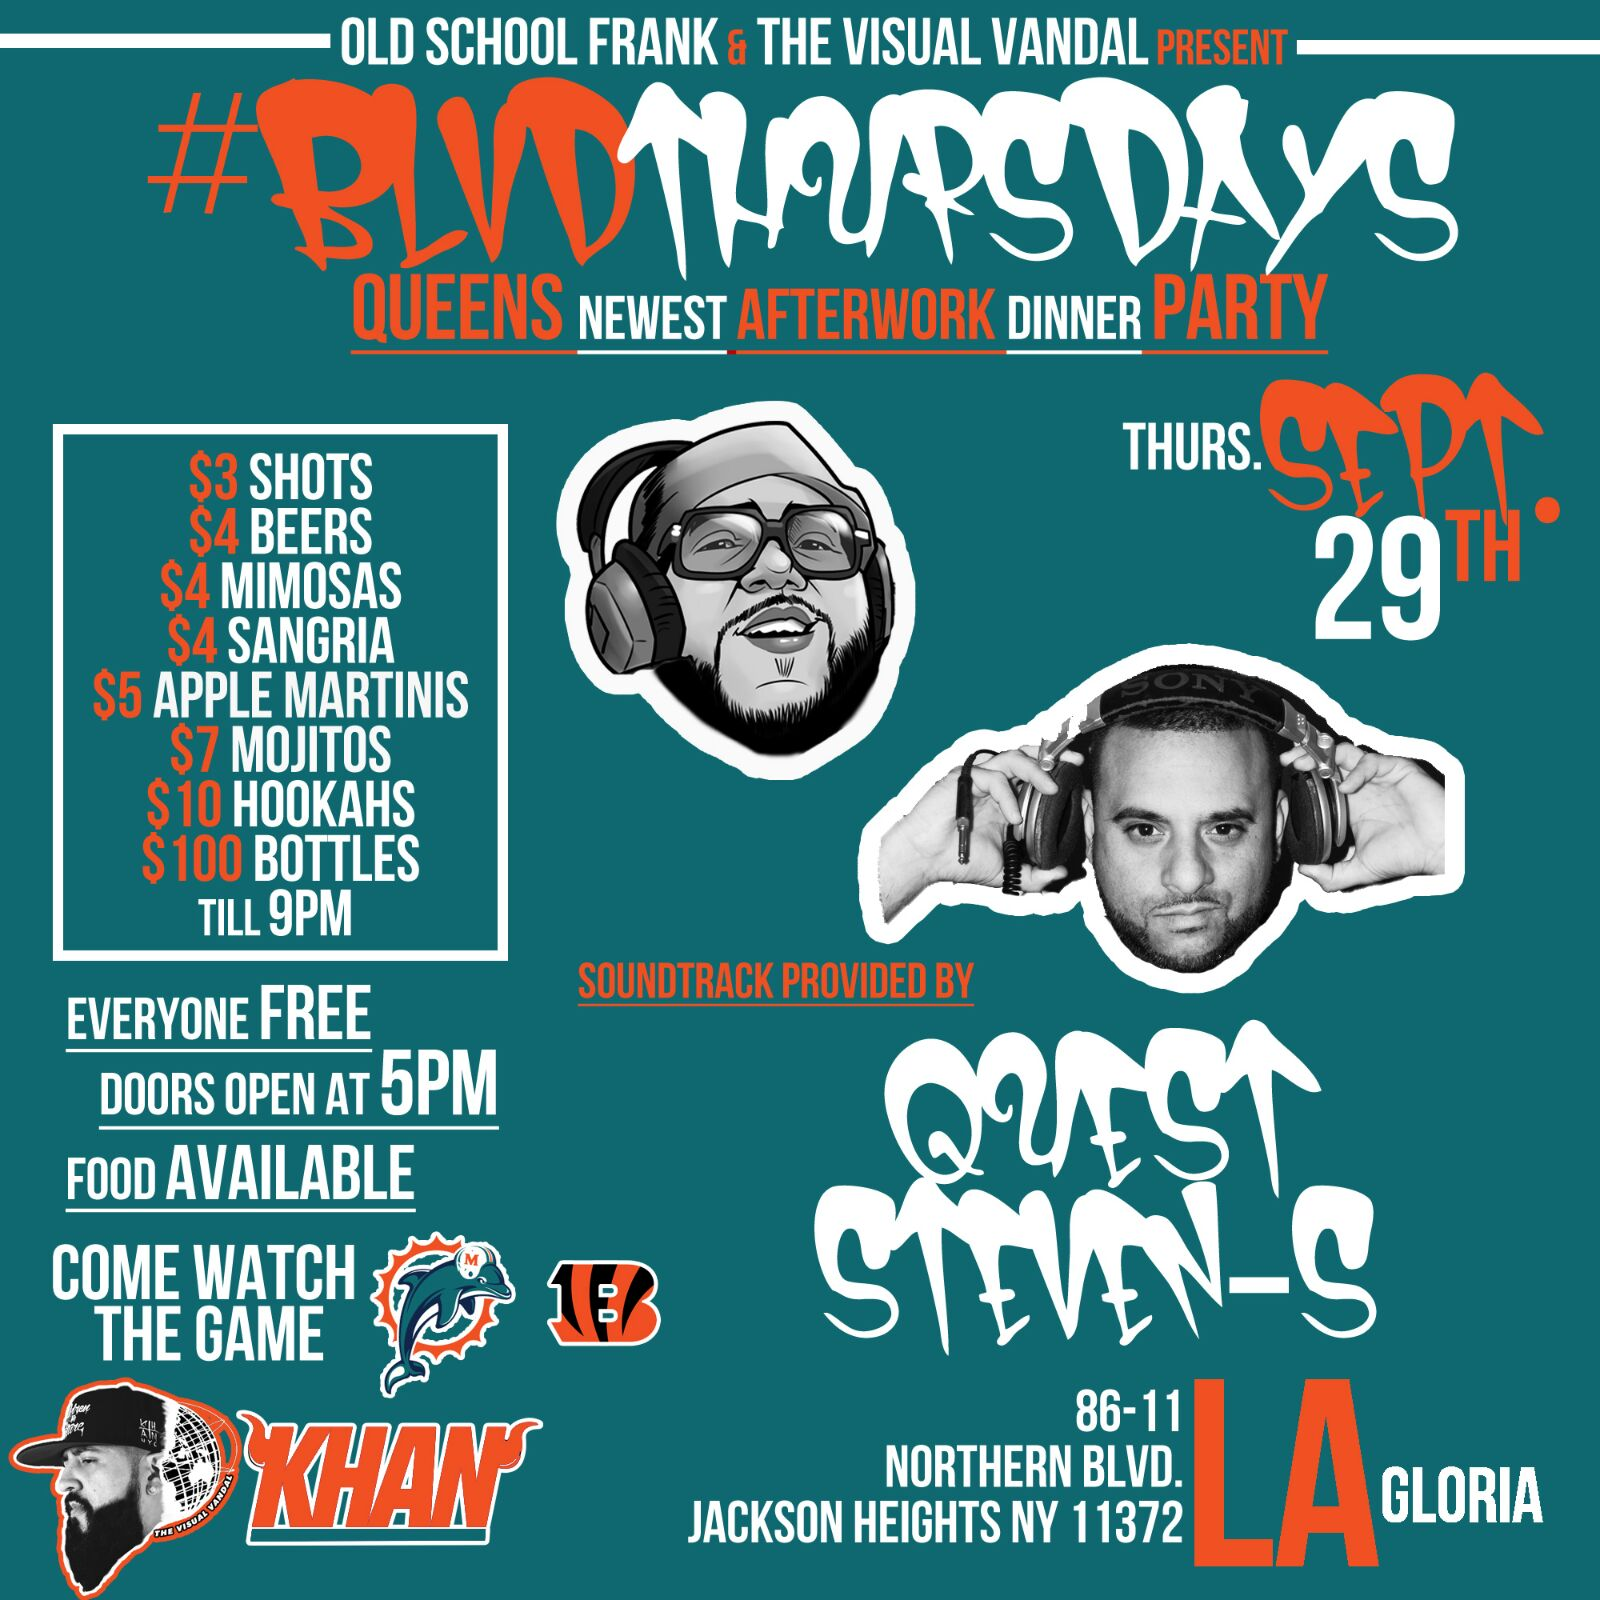 Dj Steven-S Blvd Thursdays afterwork party La gloria